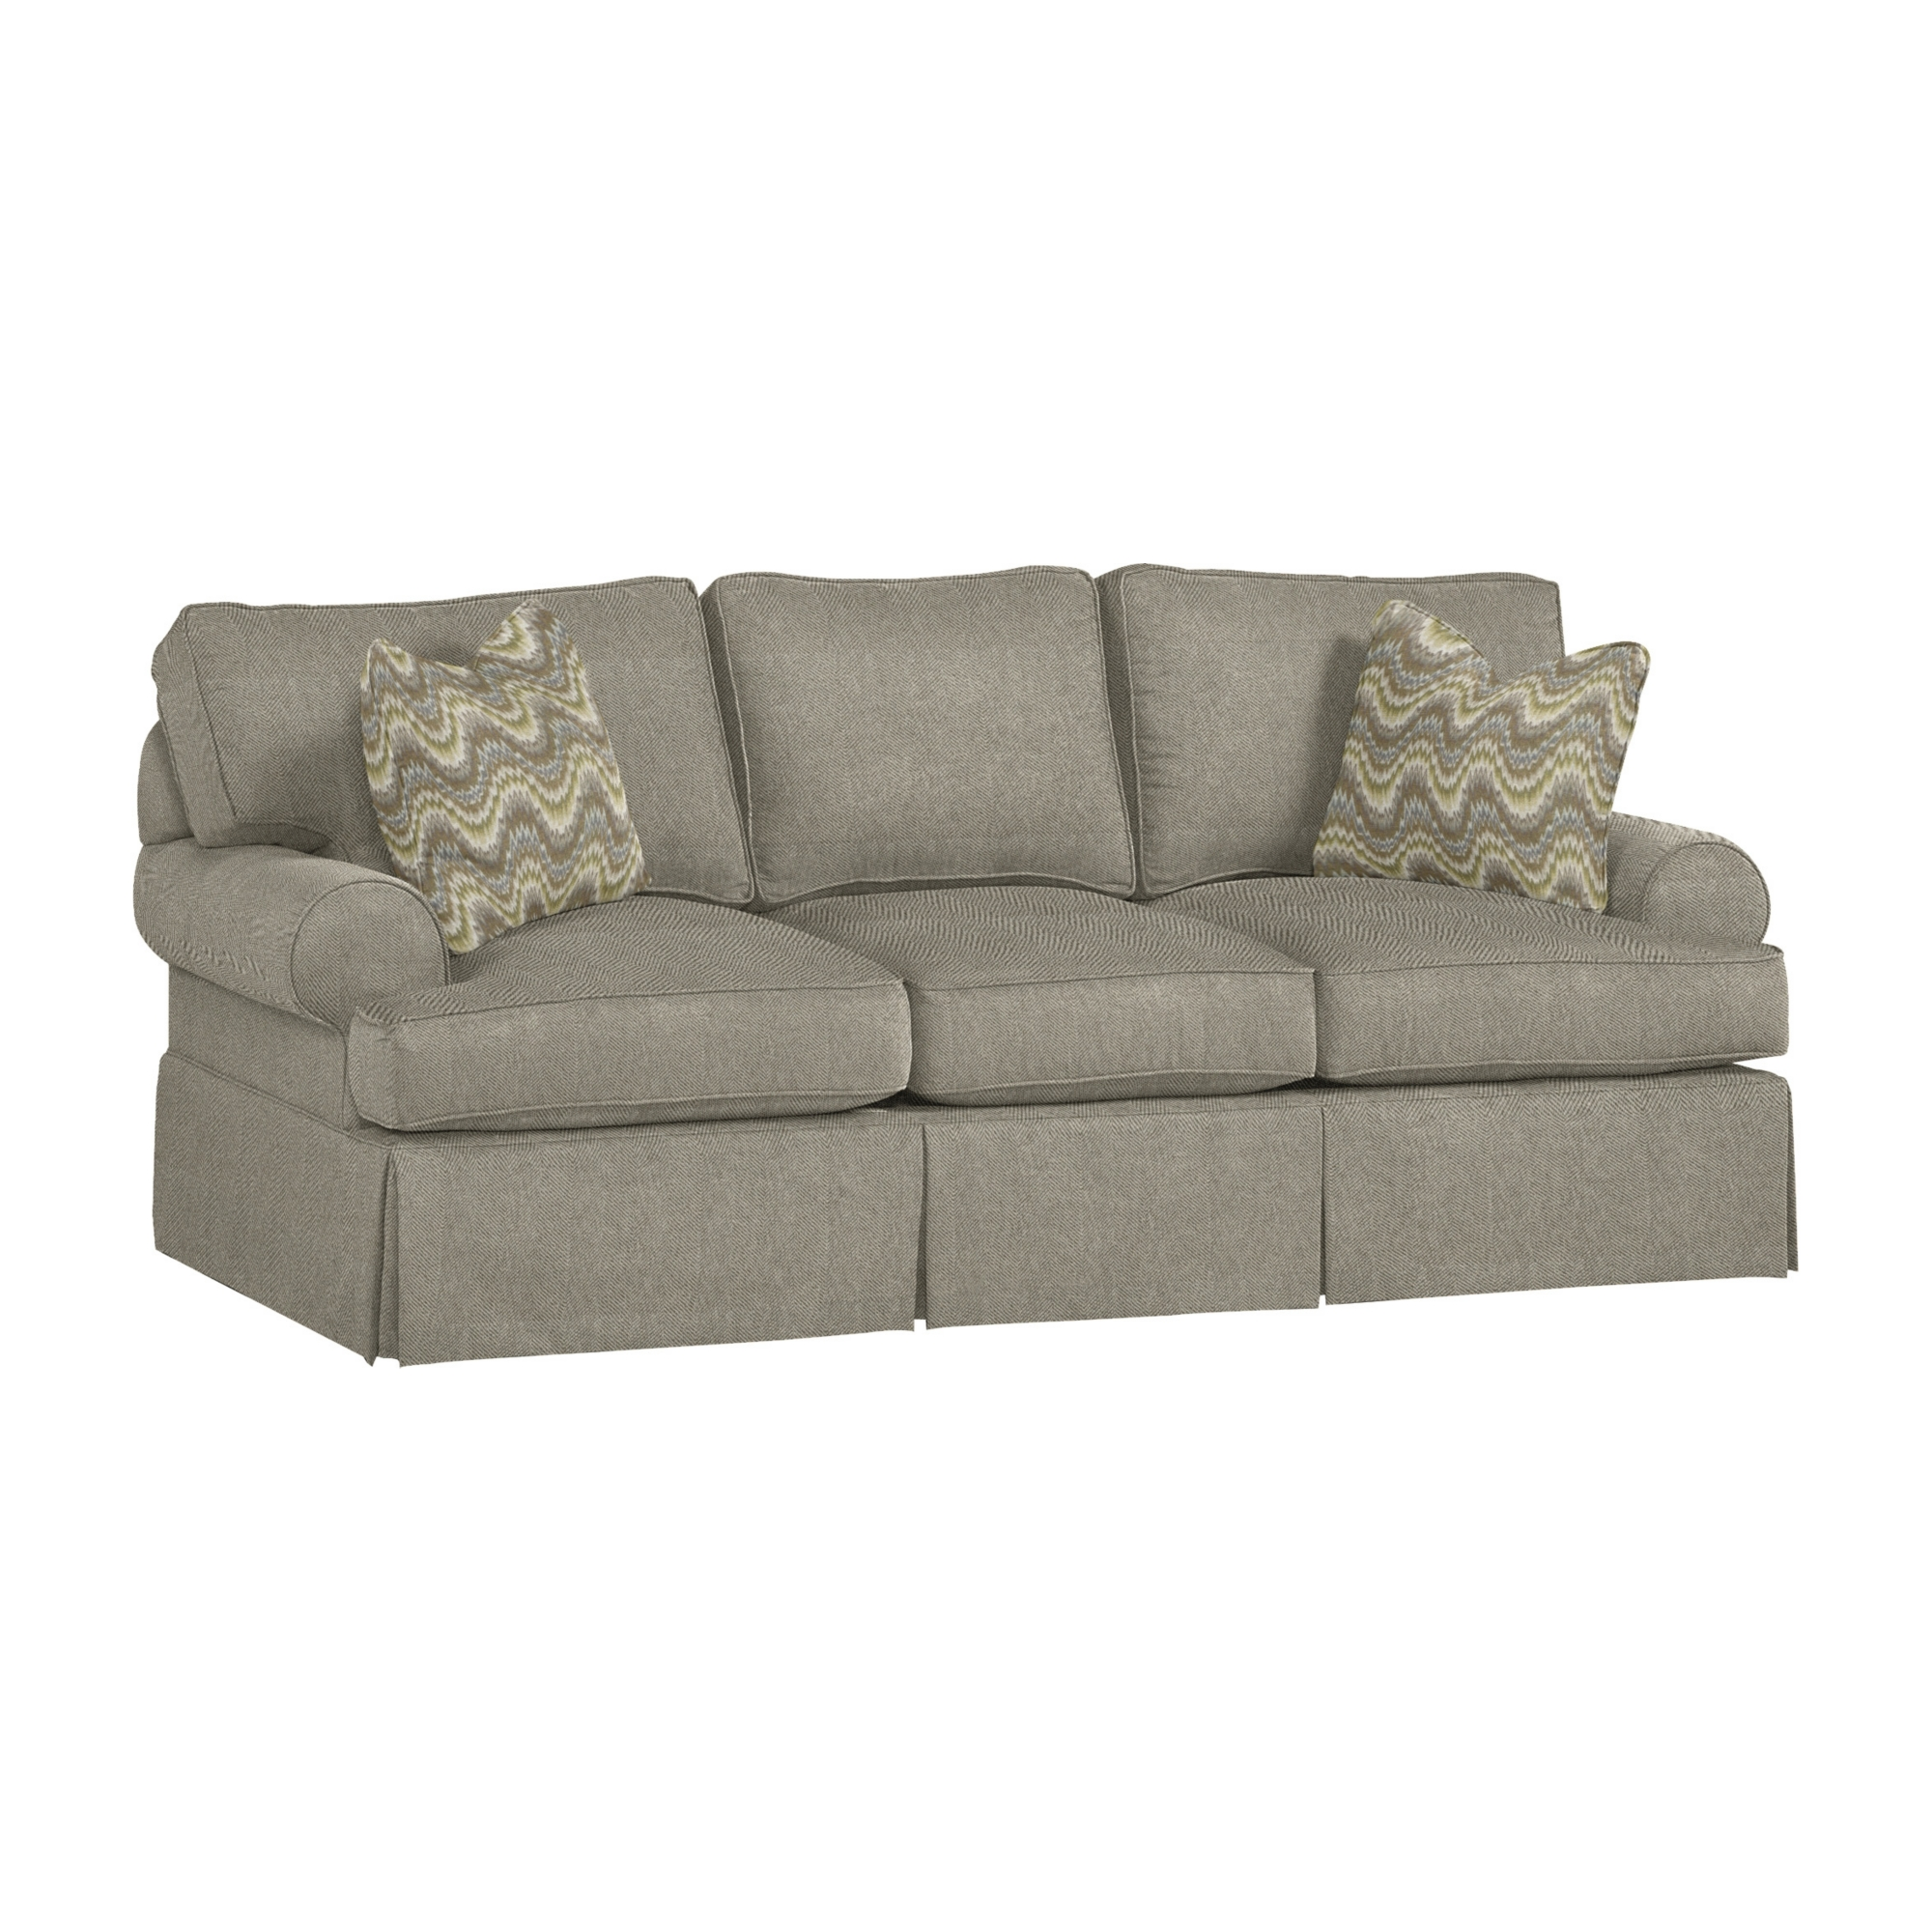 Haverty Sofa Haverty Sofa 22 With Jinanhongyu Thesofa